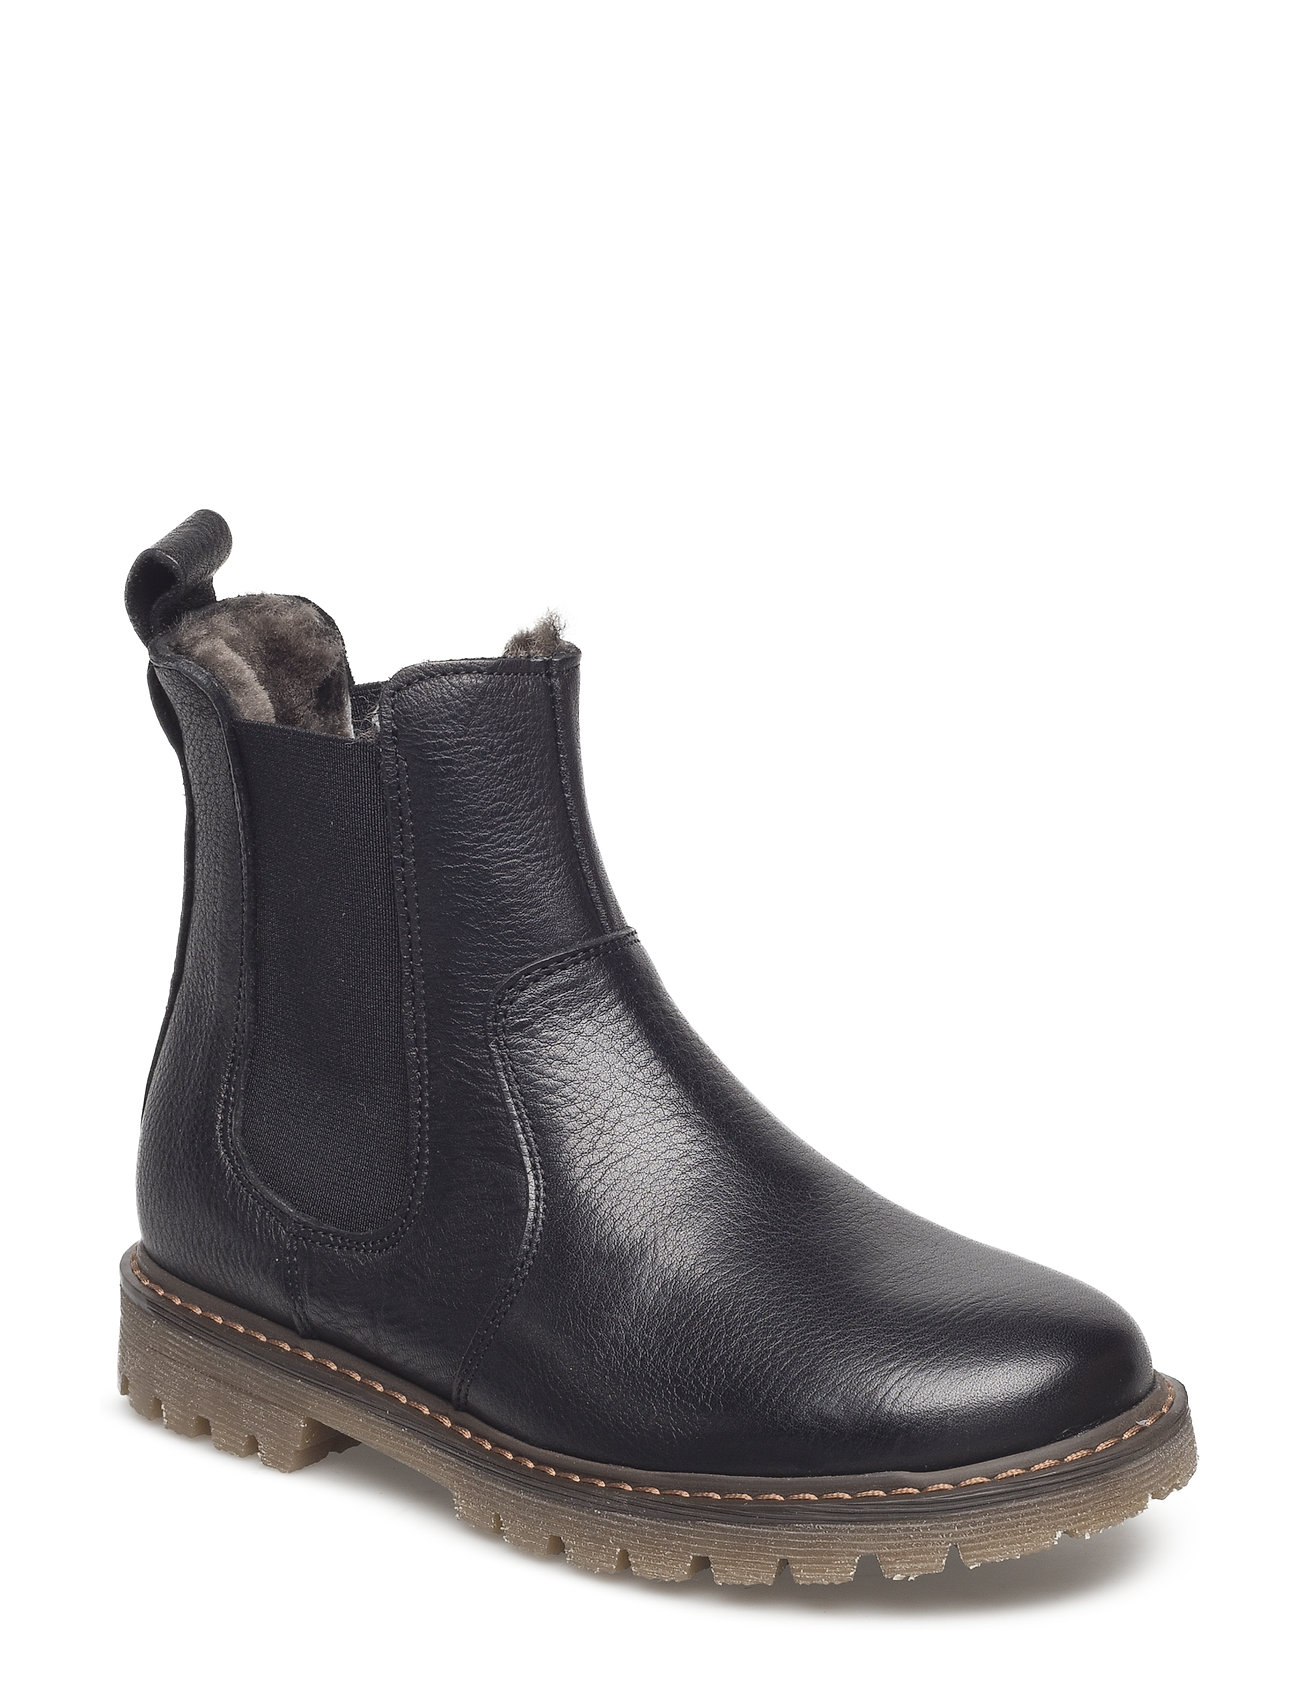 new product 0f6c3 41a43 boot